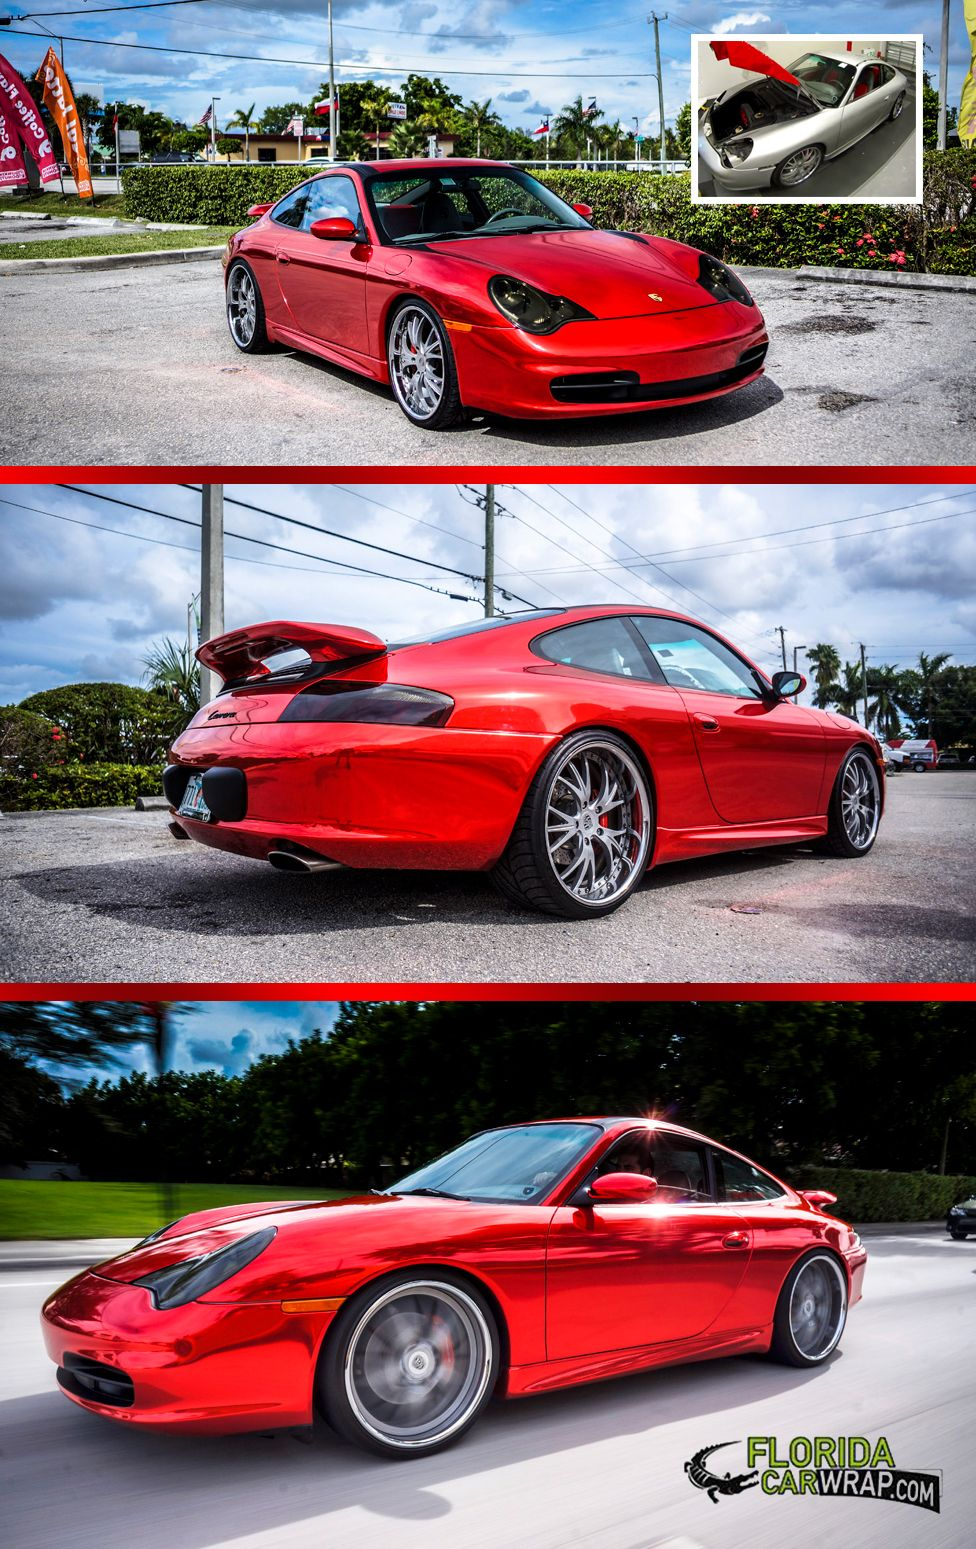 Check out this fantastic red chrome wrap from florida car